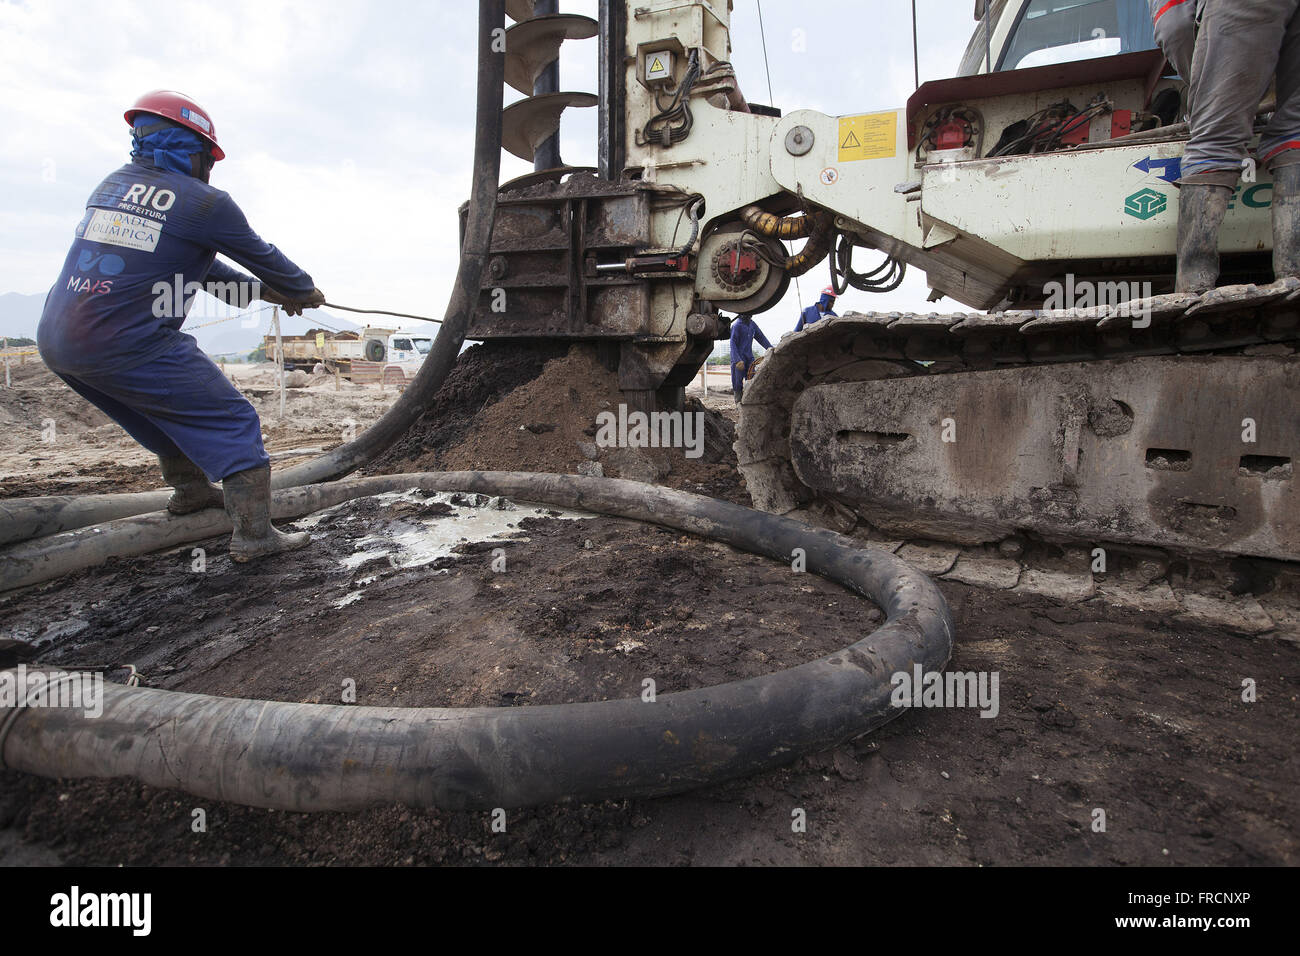 Rotary drilling machine in the works of the foundation Parque Olimpico Rio 2016 - Stock Image